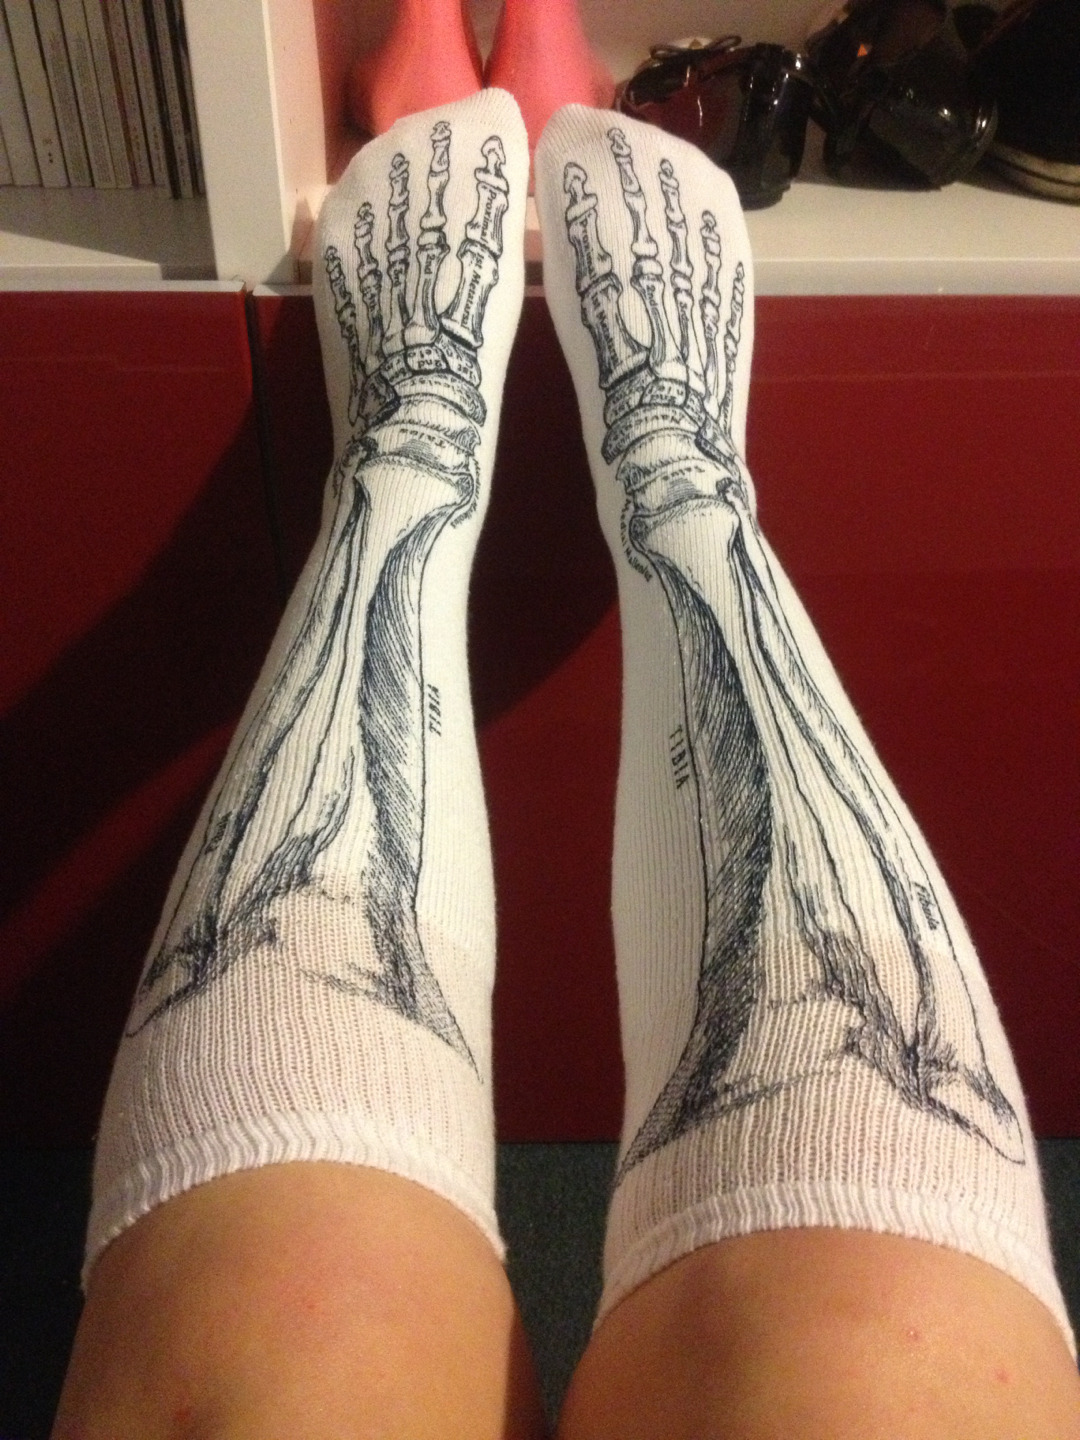 Absolutely love my new socks from the Wellcome Collection. This are perfectly me.